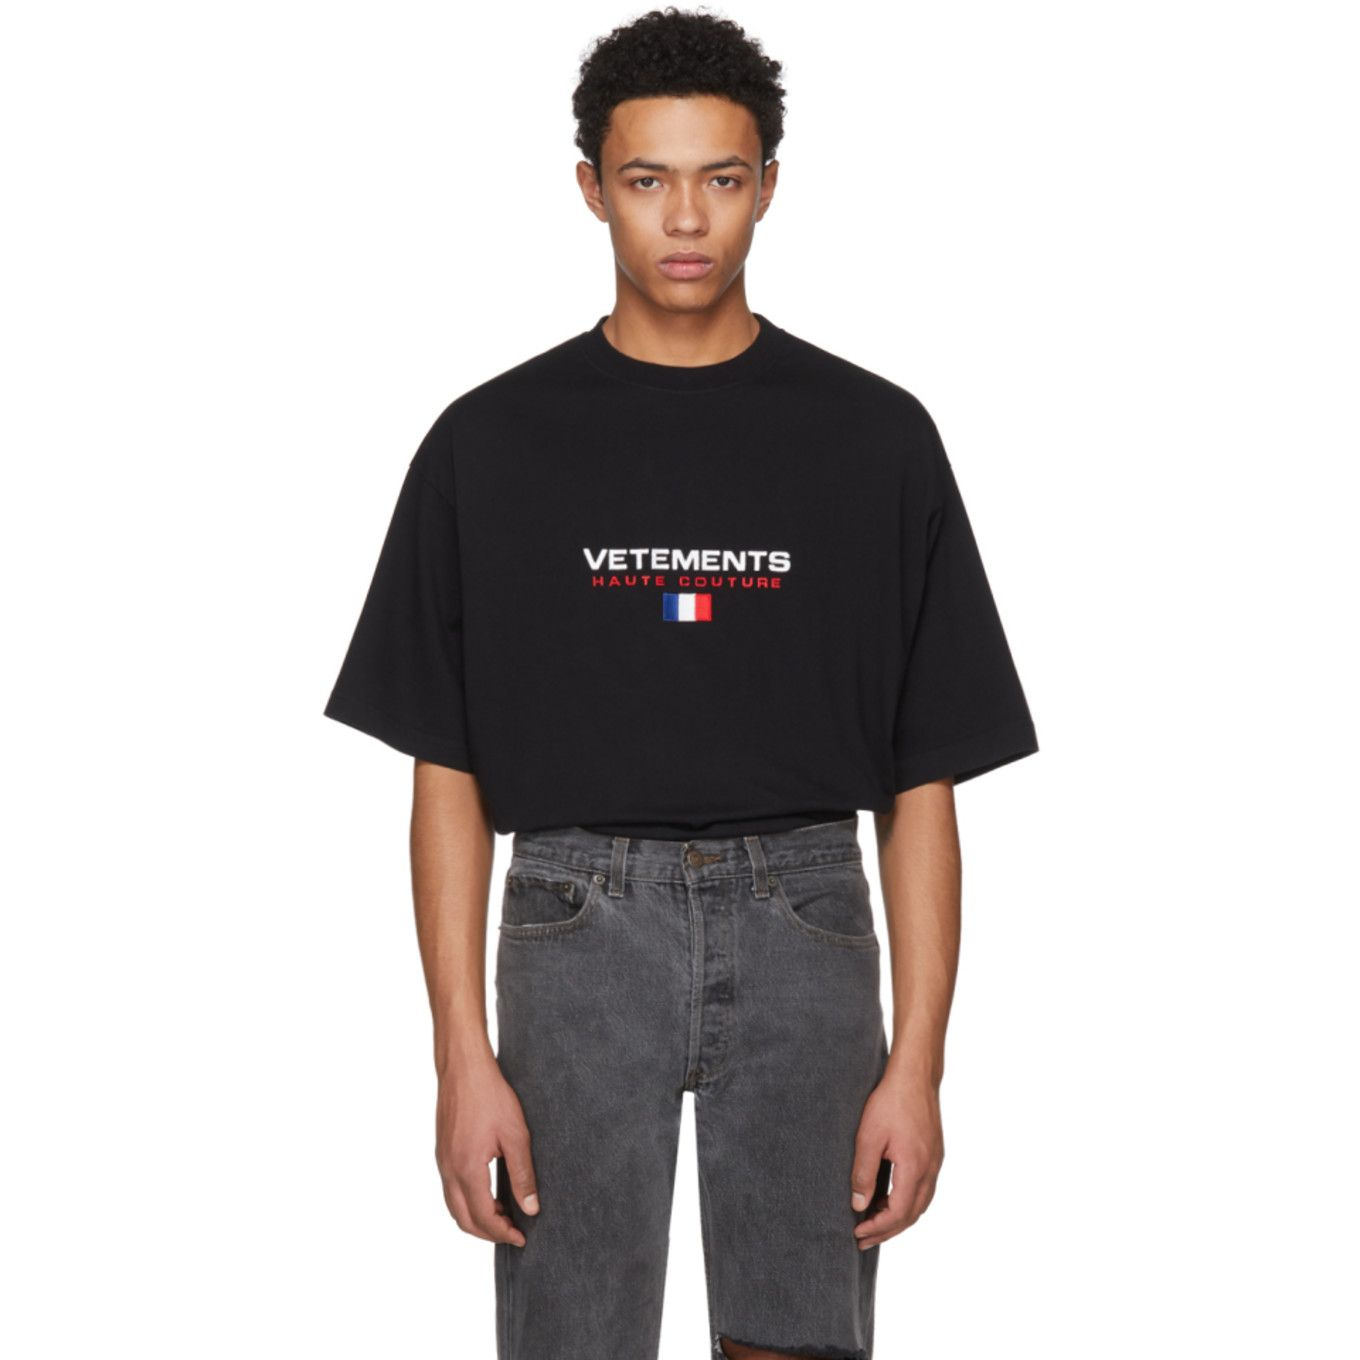 7cad25ca9 Vetements - Black Haute Couture Logo T-Shirt | Stupid Fashion ...